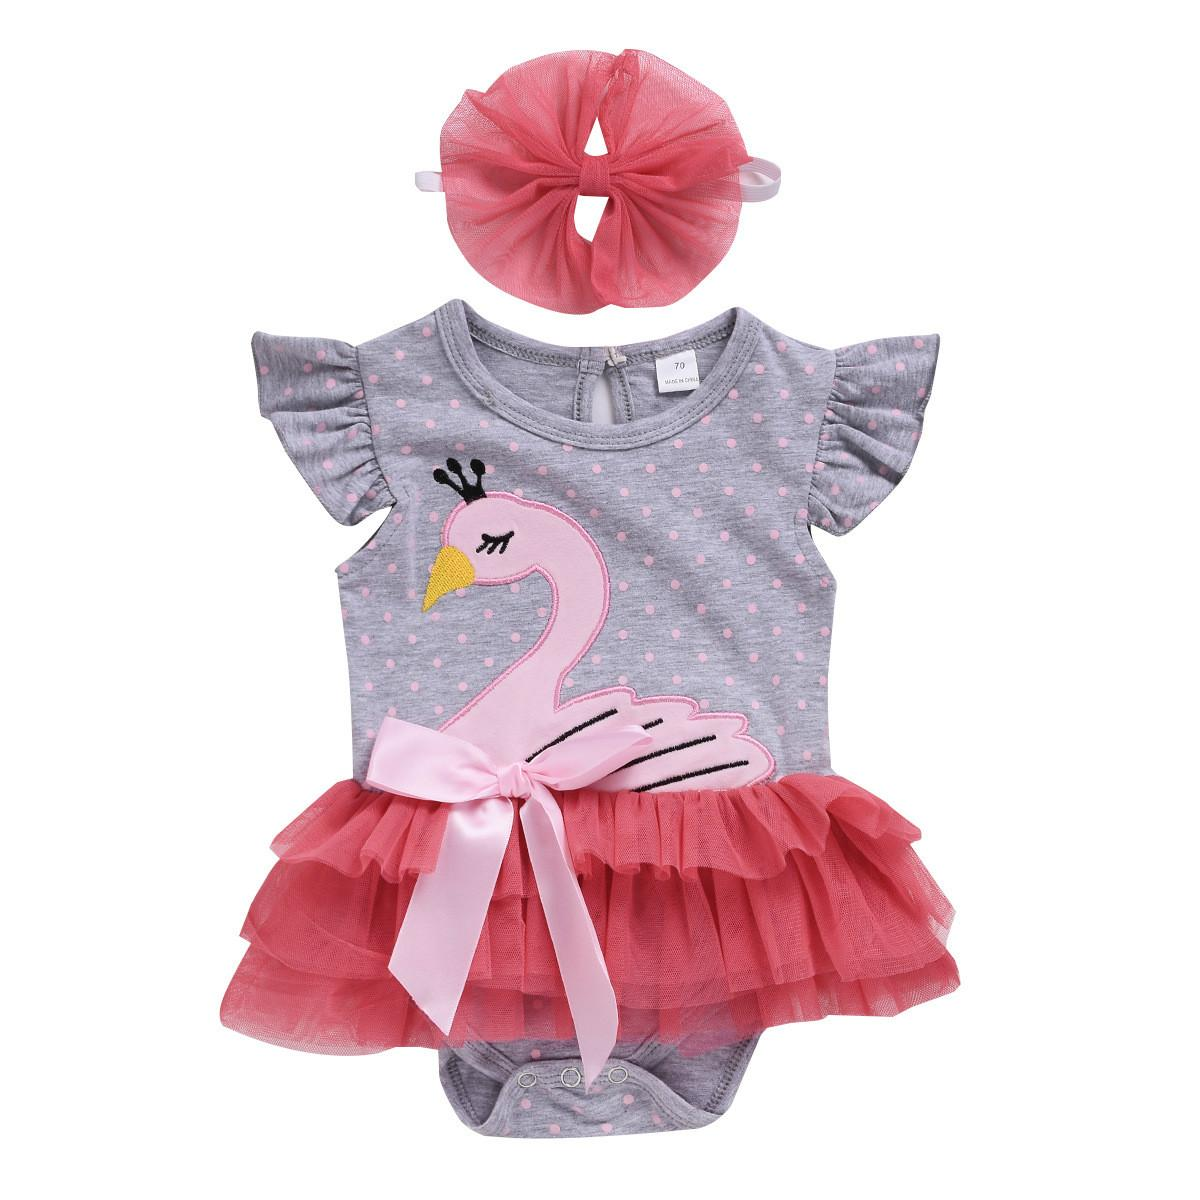 37a98b33d92 New Fashion Baby Girls Romper Kids Flying Sleeves Swan Lace Tulle ...